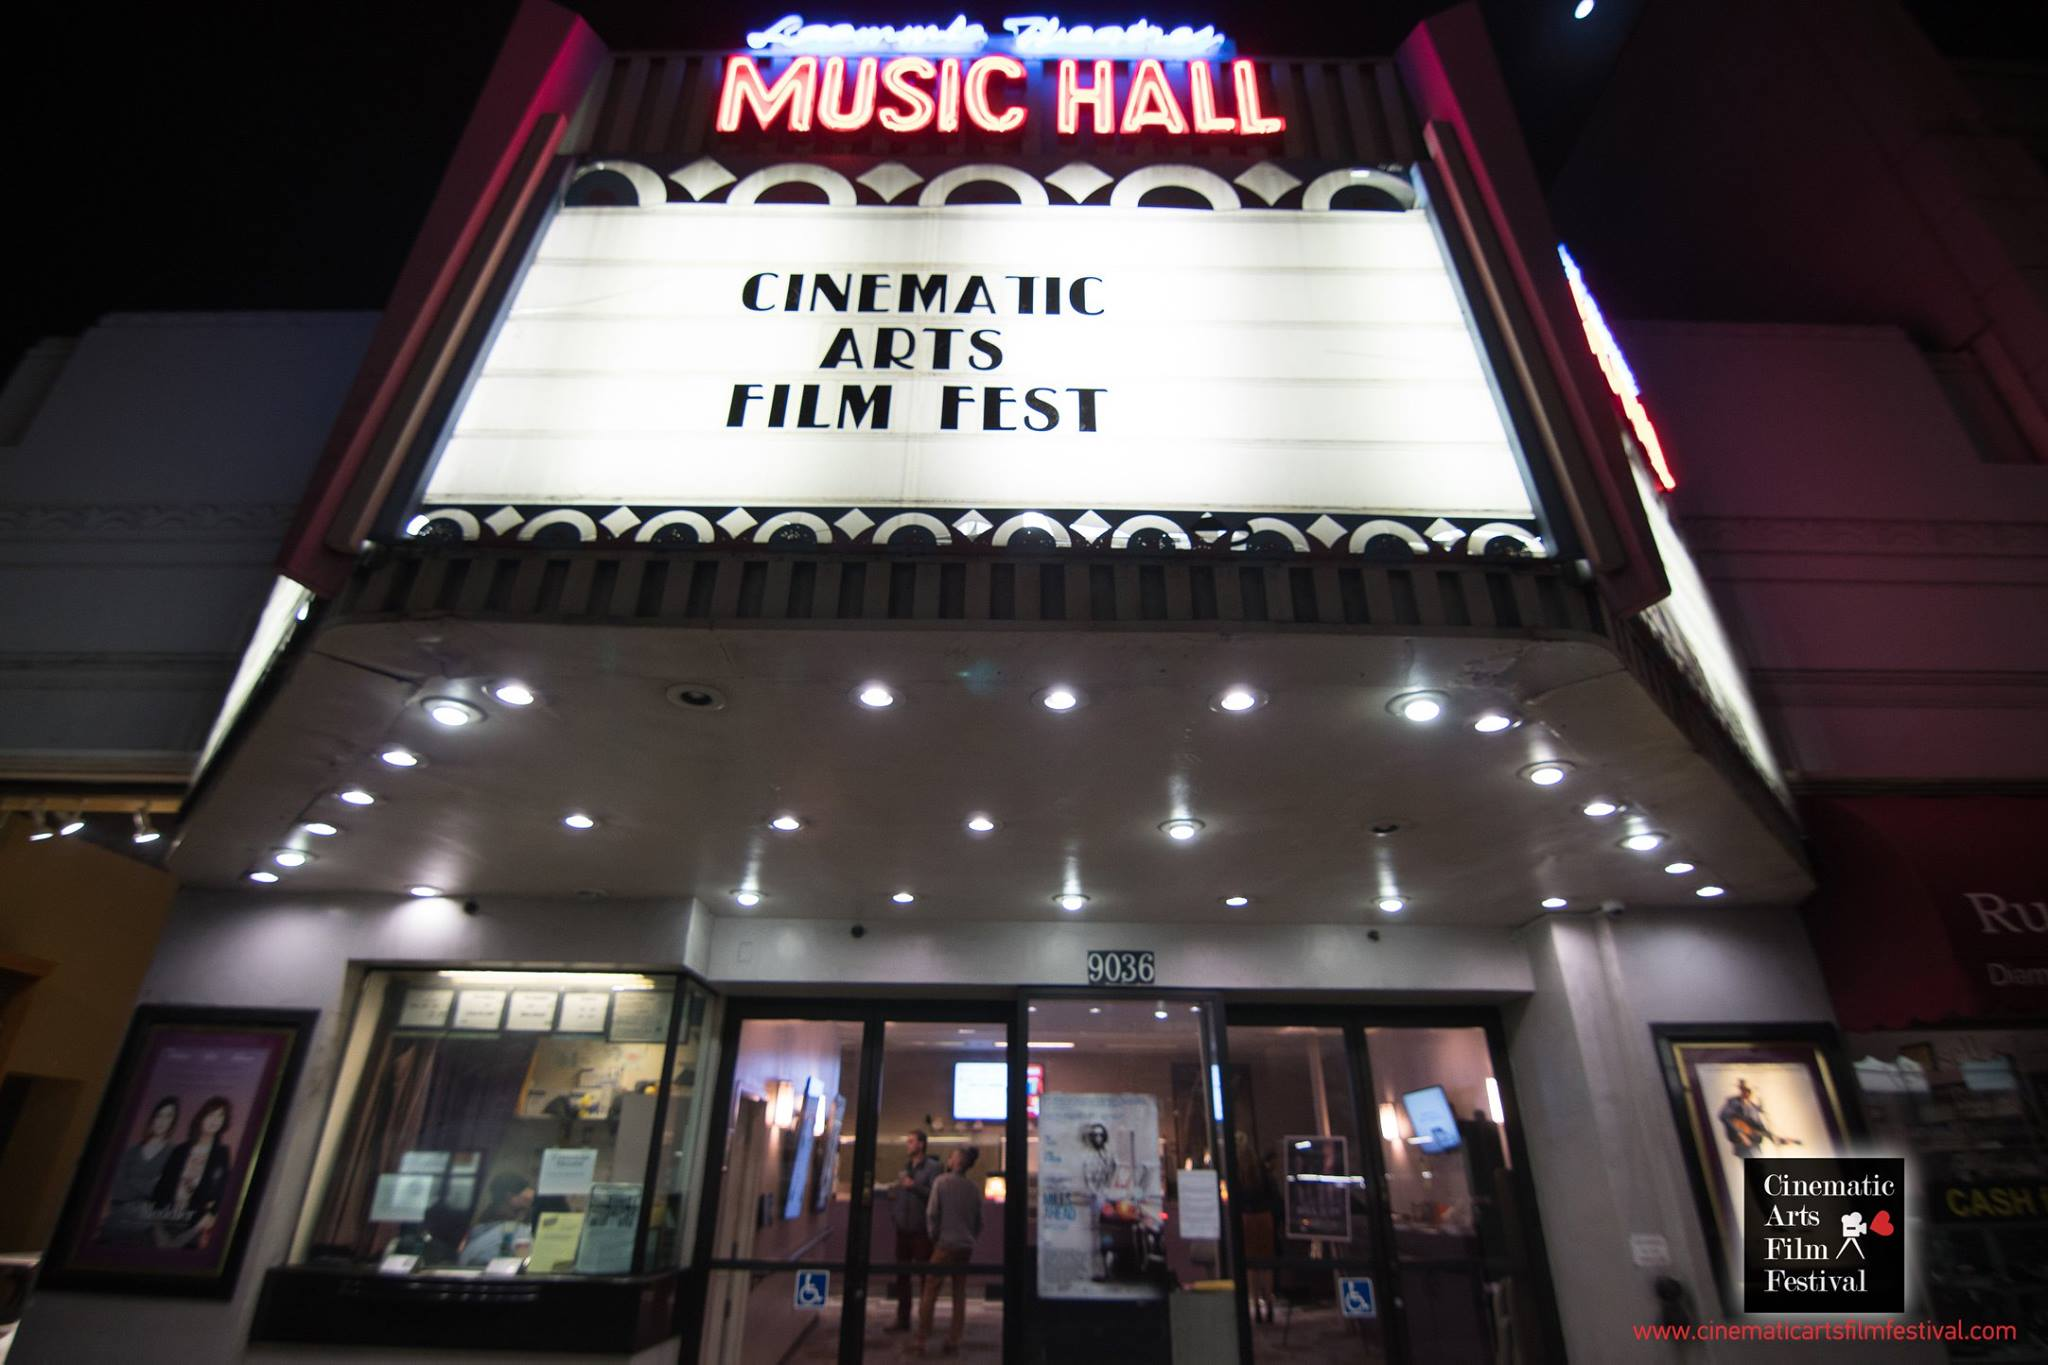 International Film Festival of Cinematic Arts (Shorts and Micro Cinema) Los Angeles